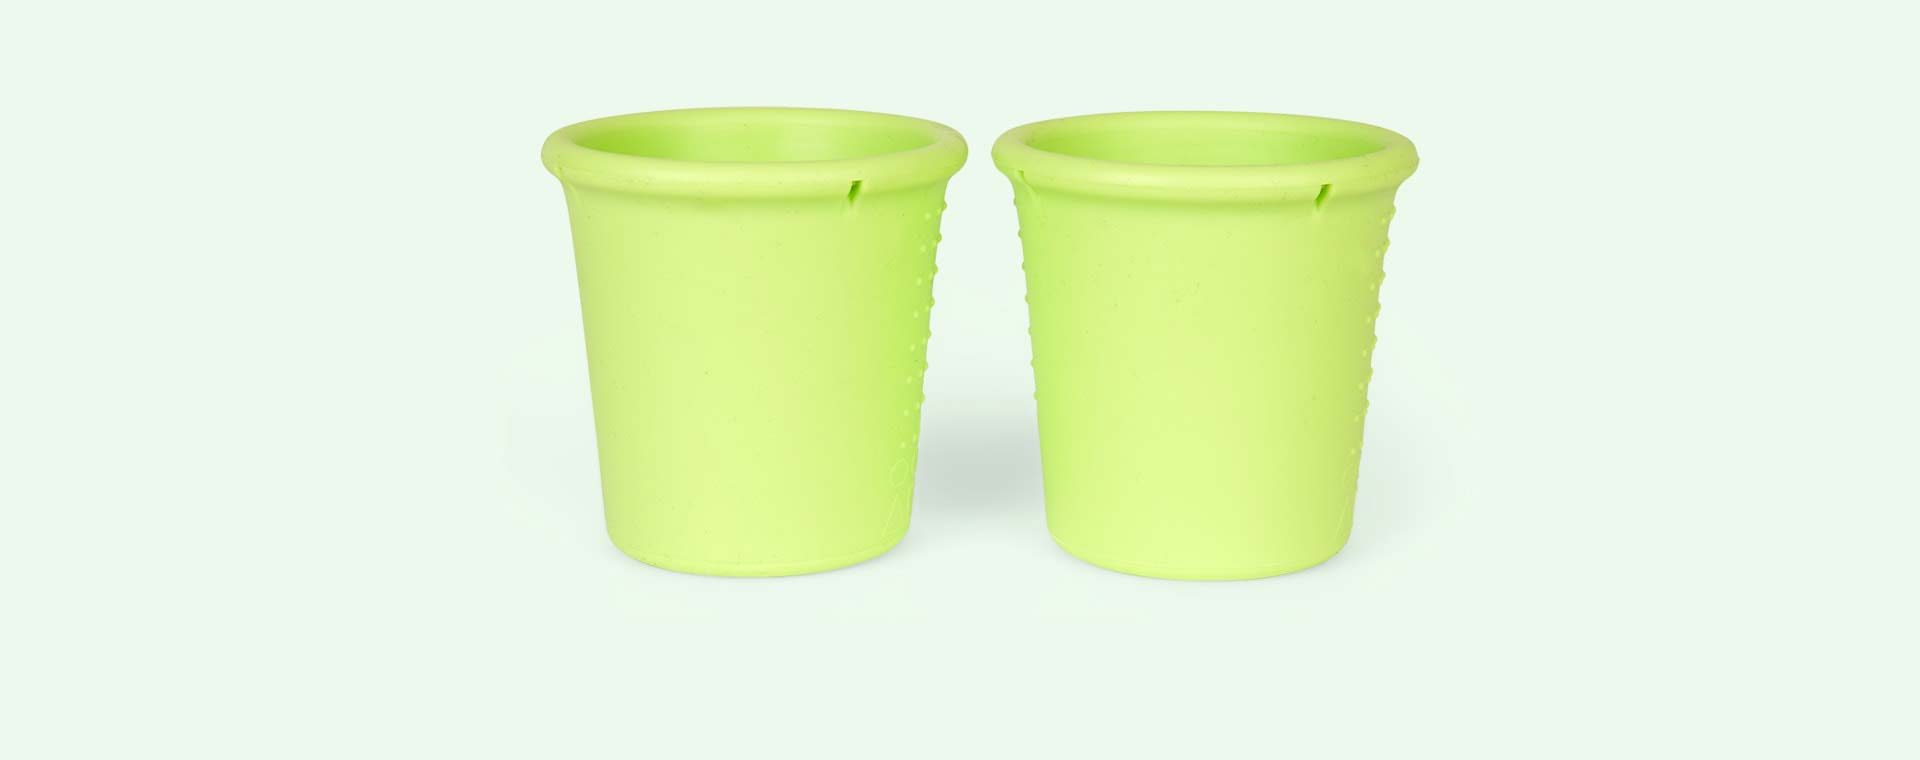 Lime Go Sili Silicone Cups - 2 Pack